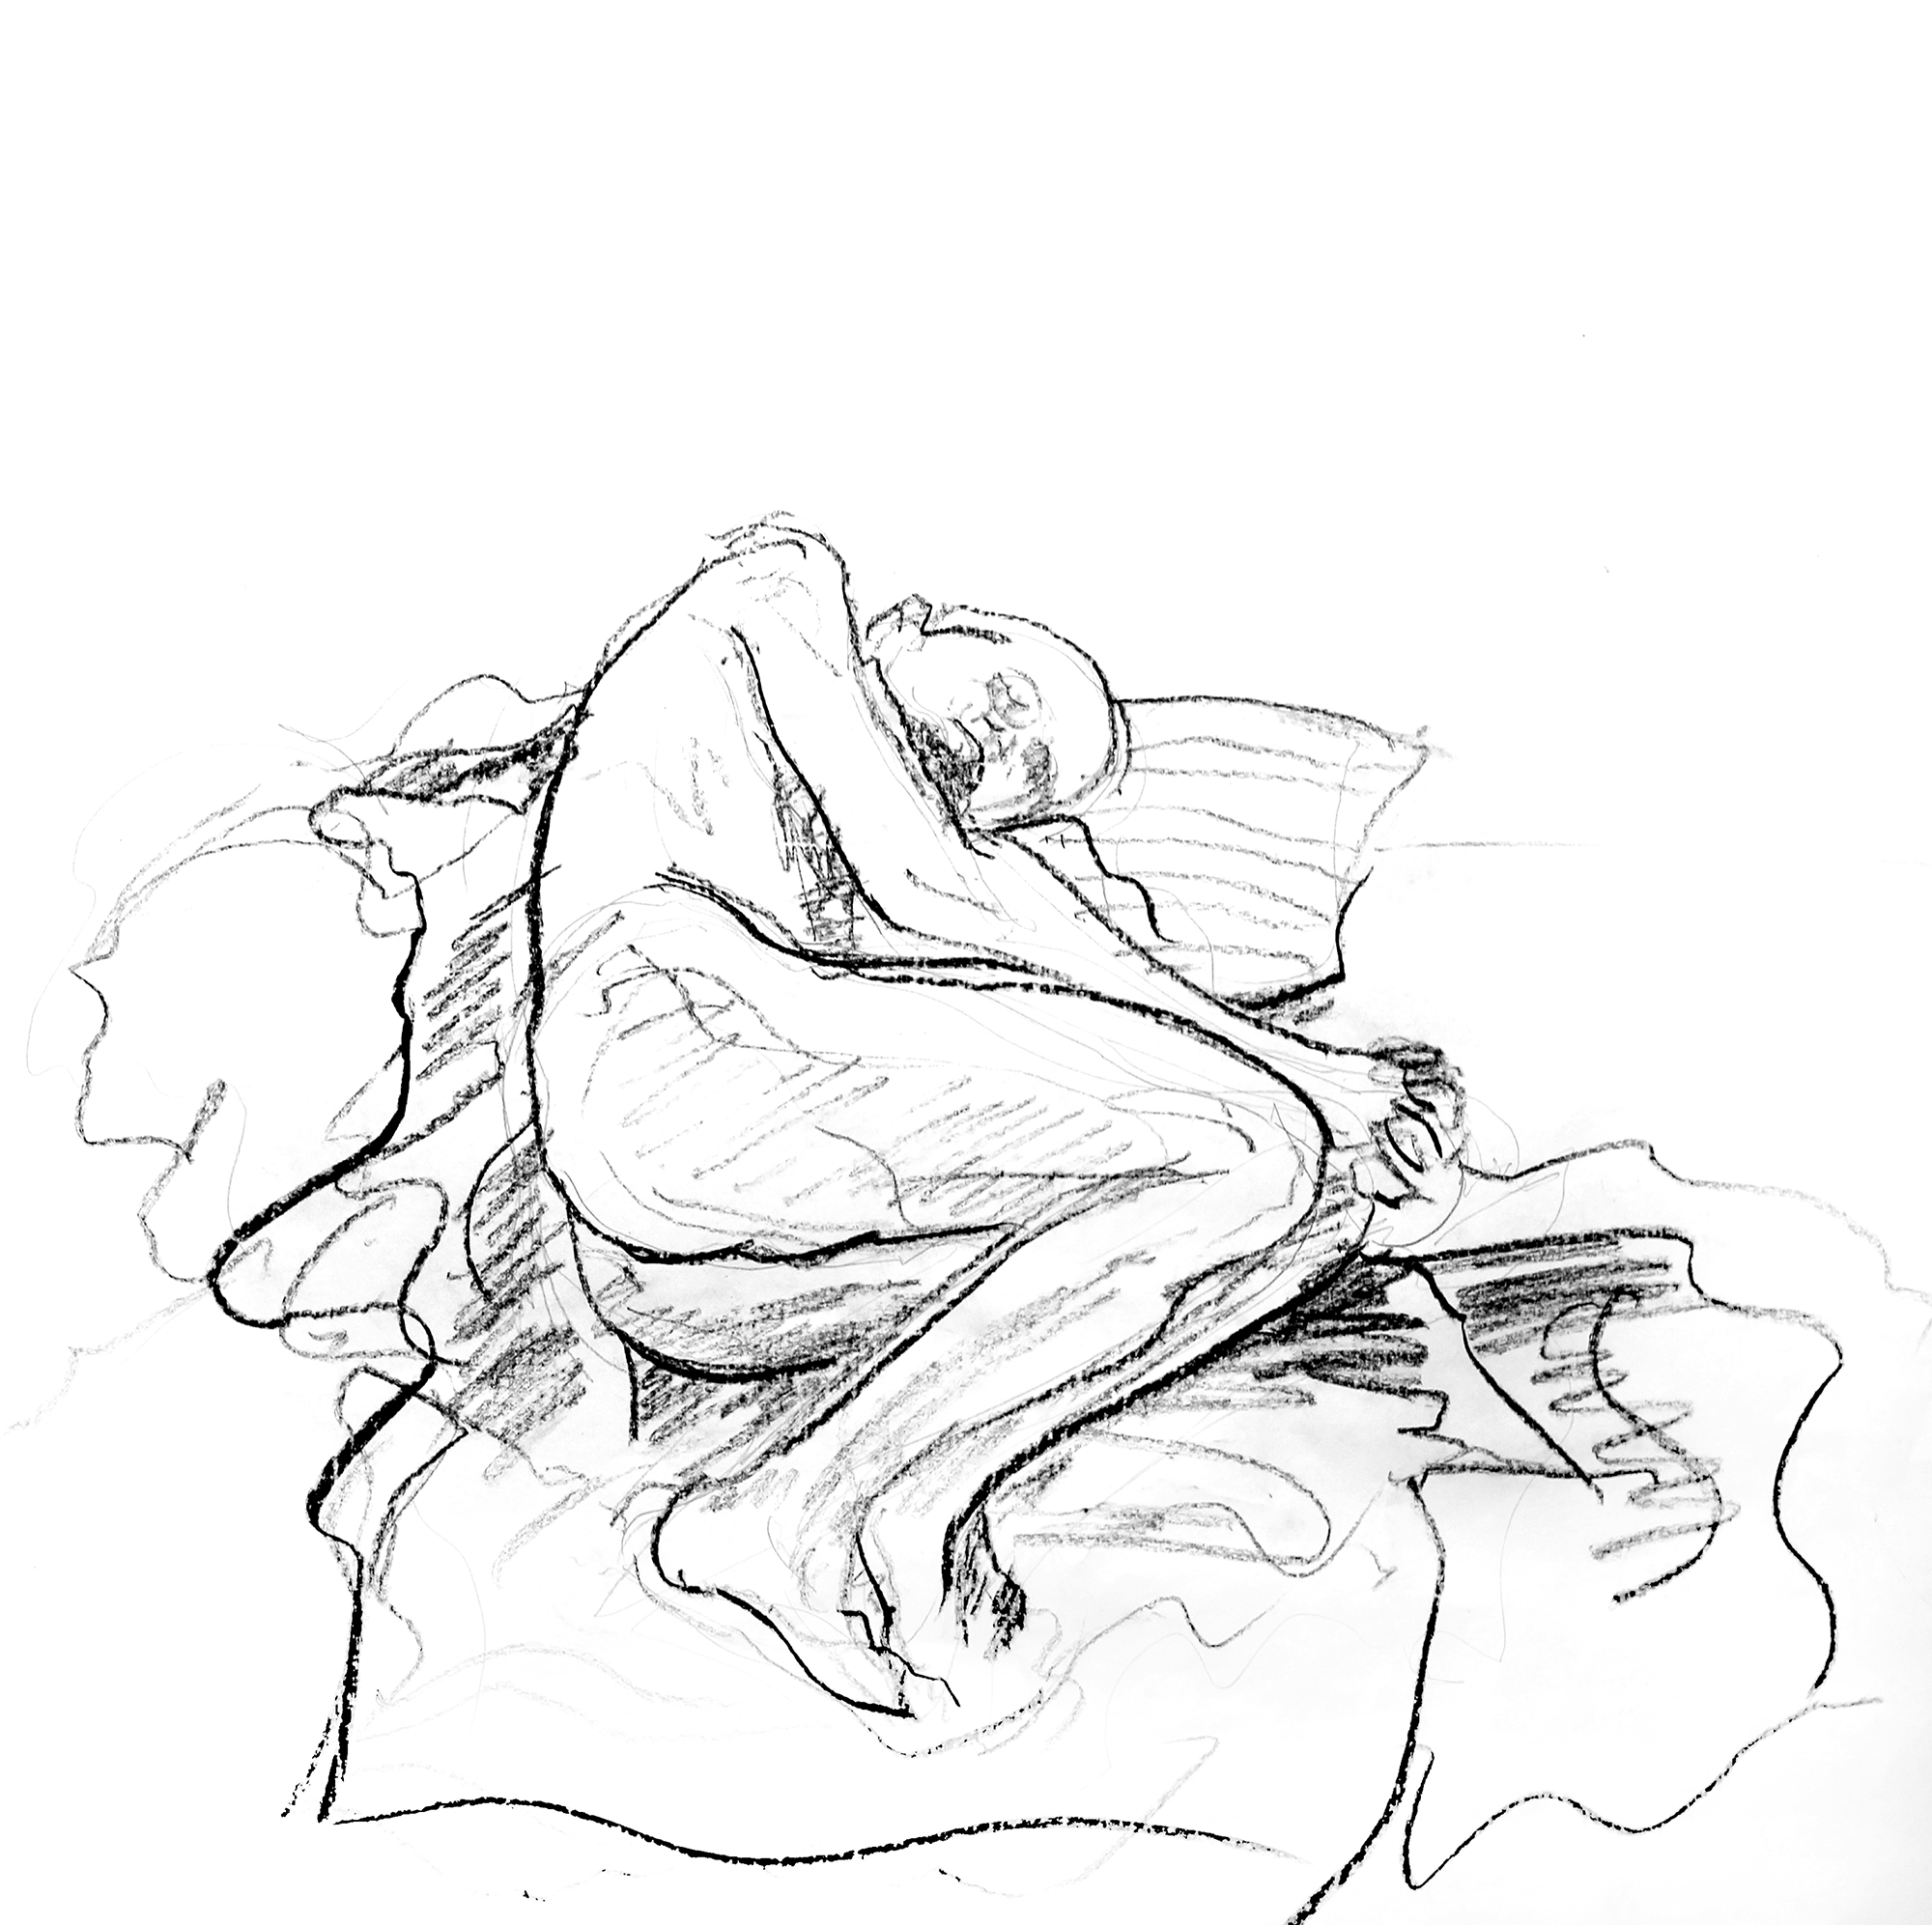 Life drawing 2-Sophia O'Connor-small.jpg